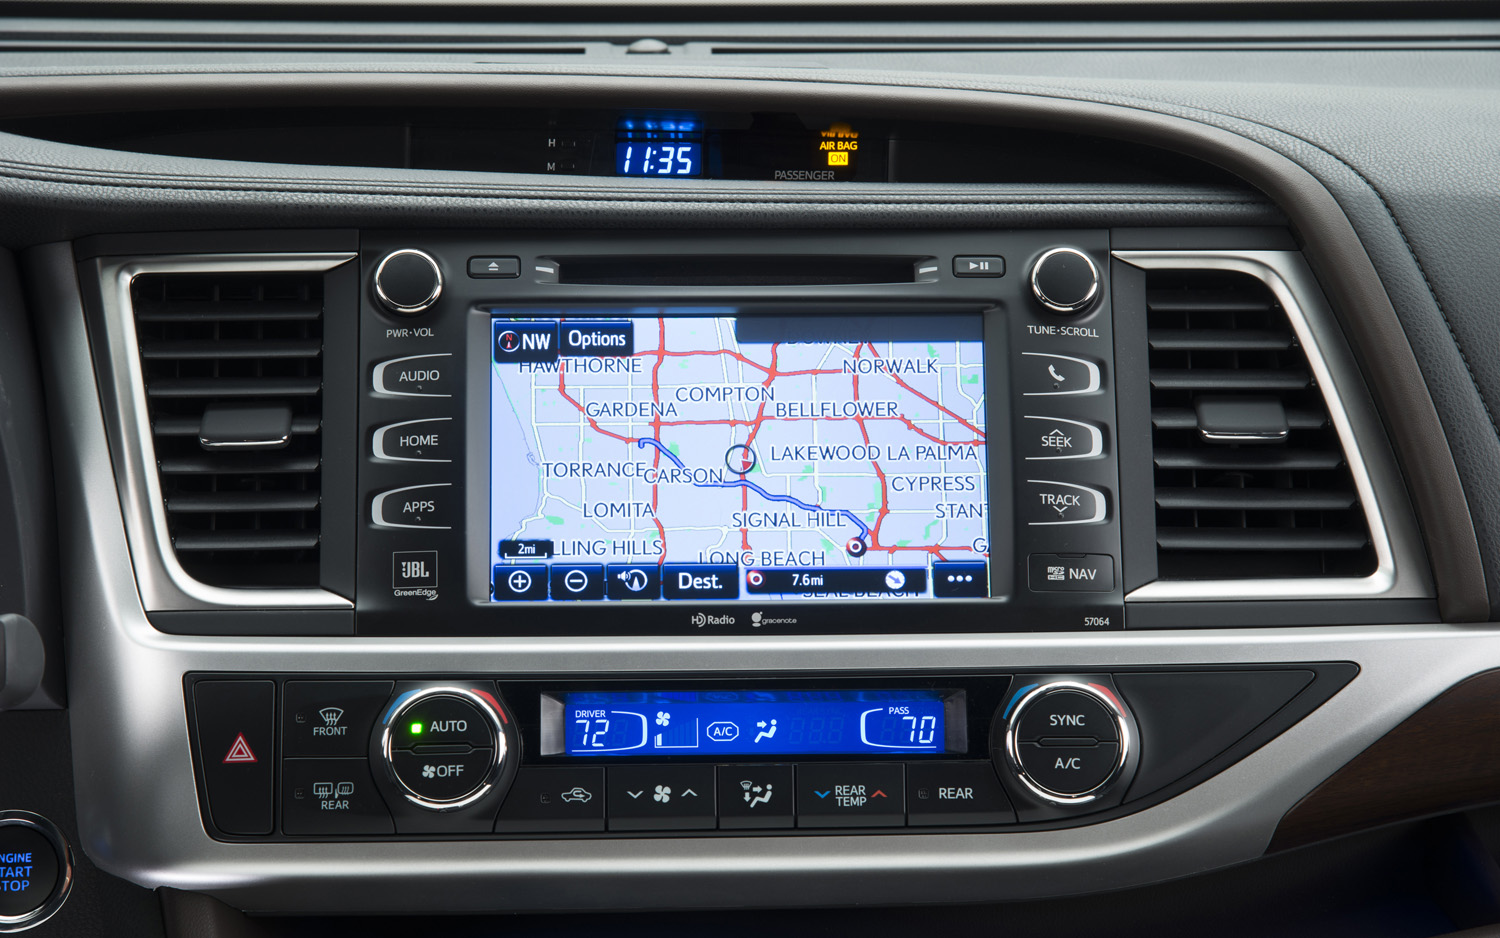 Advanced Dealer Services L Toyota Oe Multimedia Navigation